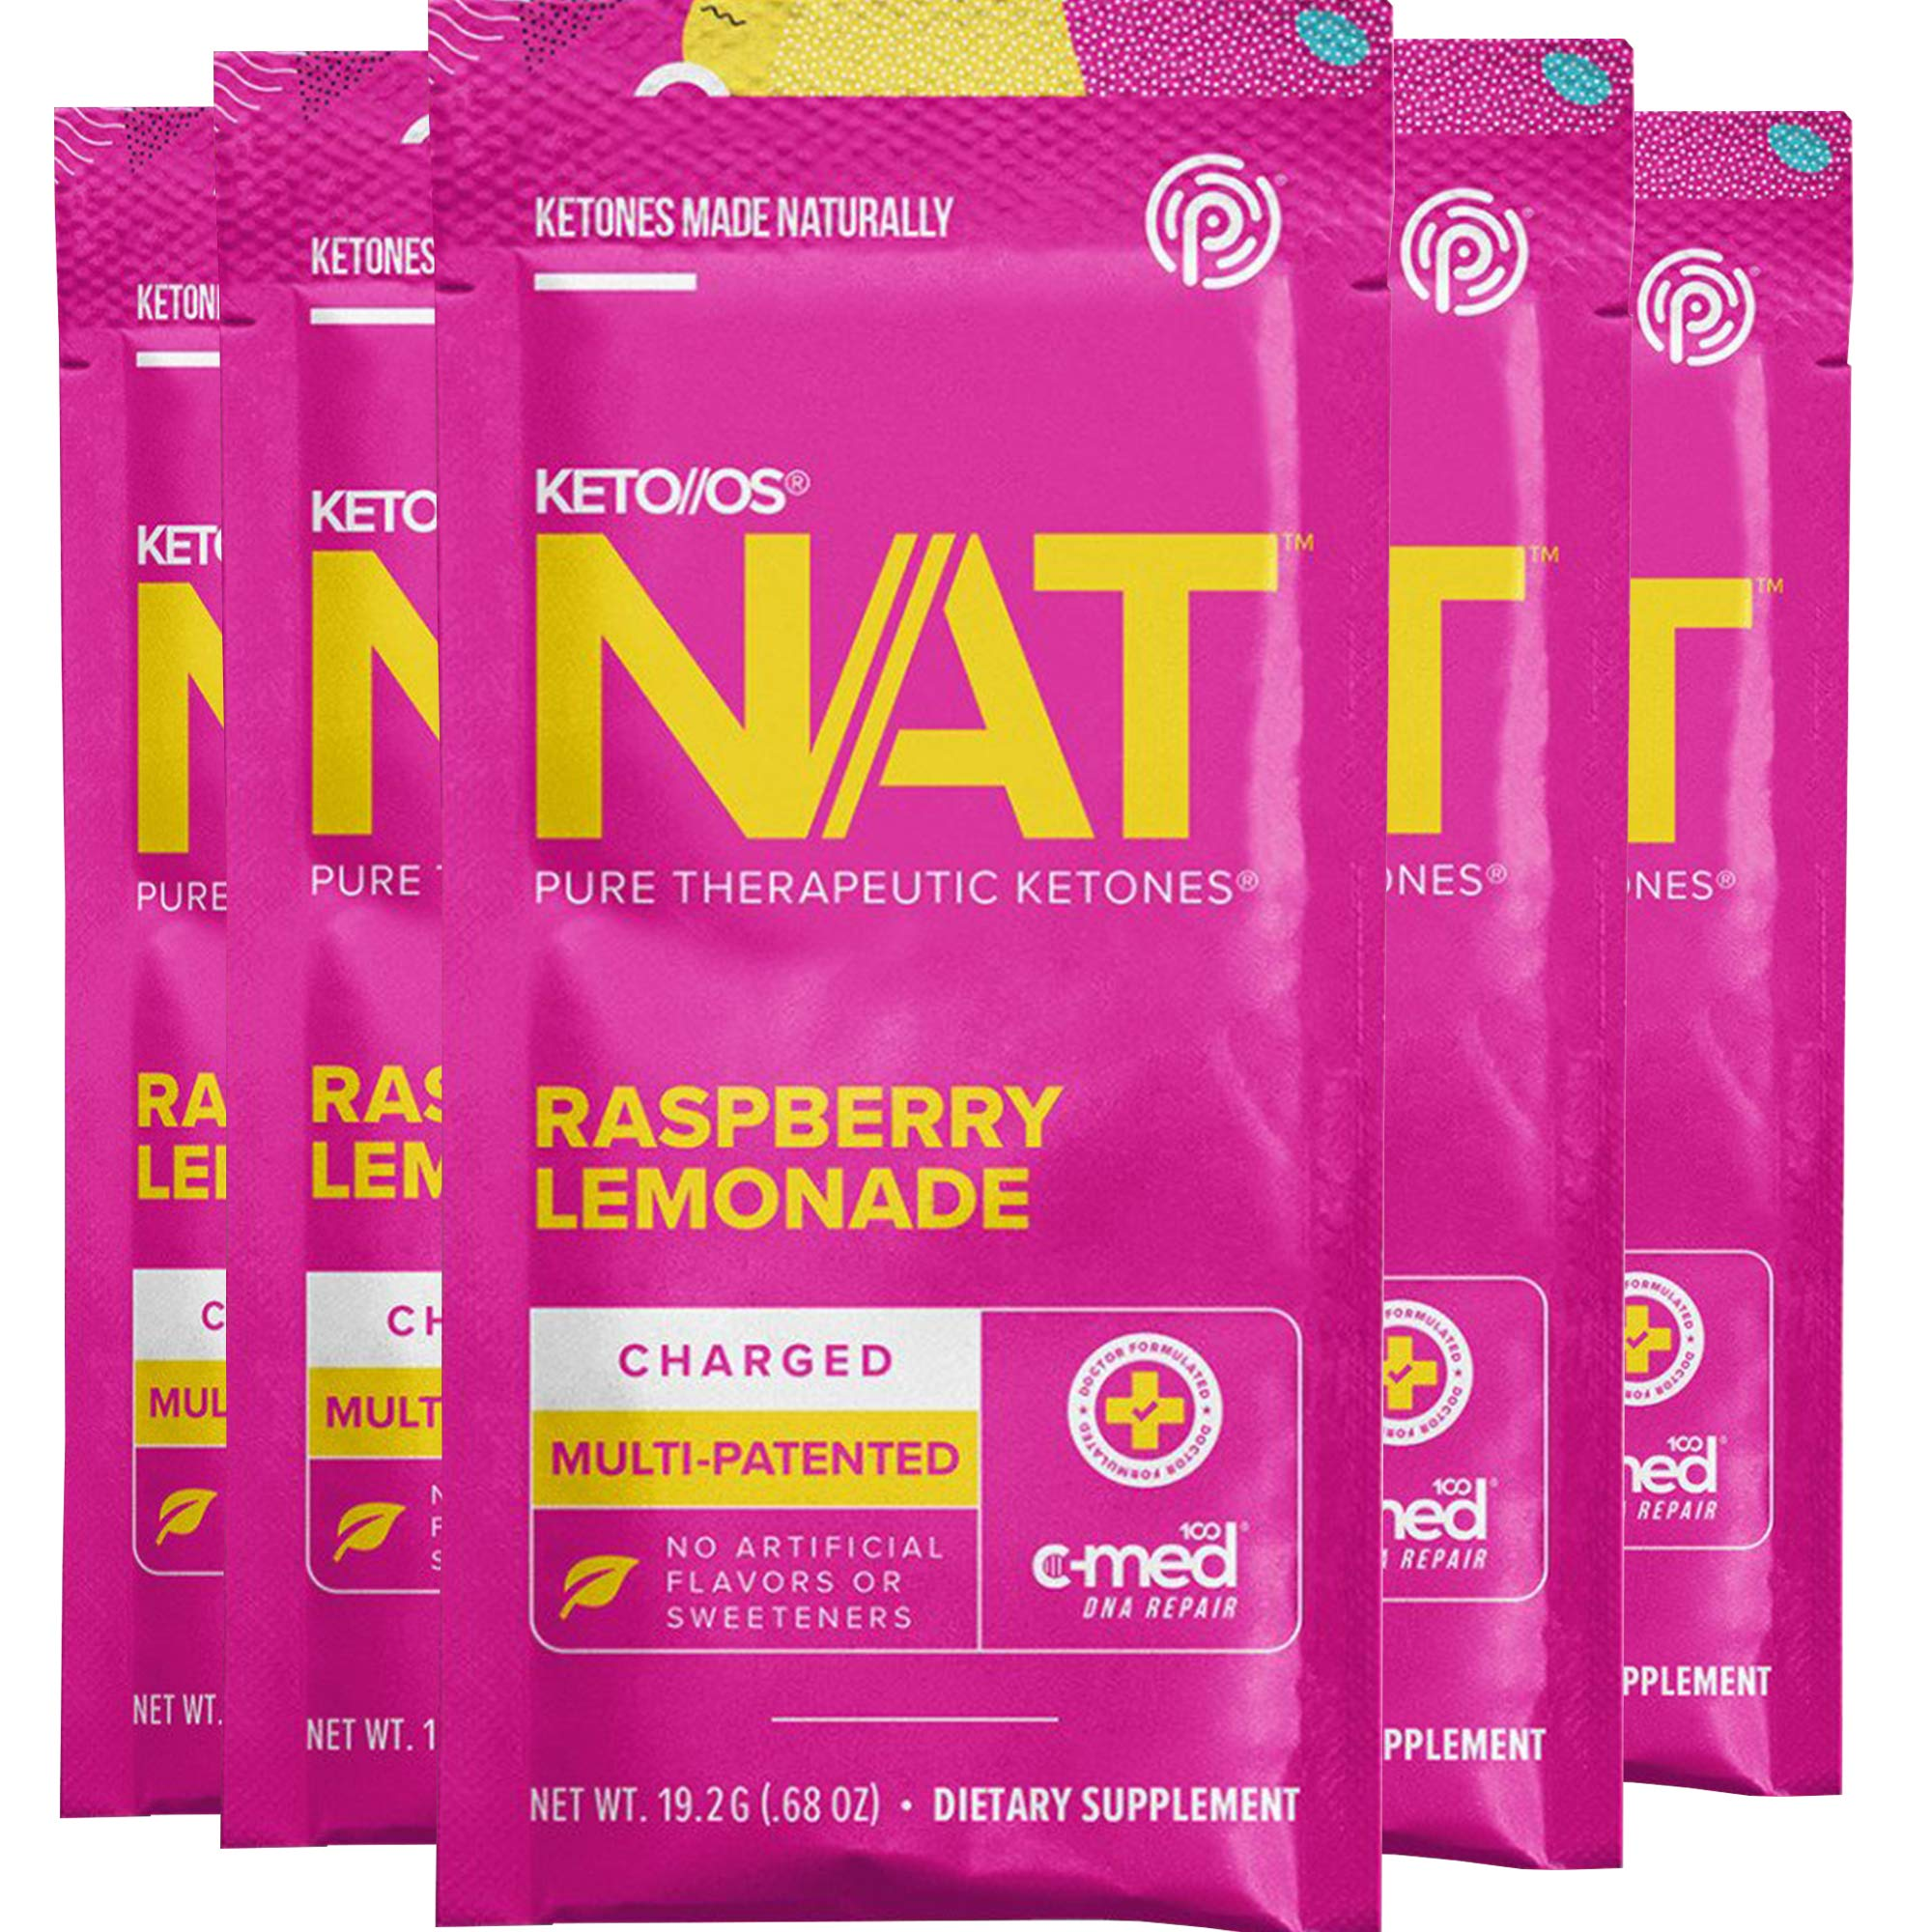 Pruvit Keto//OS NAT – Raspberry Lemonade Charged (5 Single Serve Packets)                BulkSupplements Raspberry Ketones (100 Gelatin Capsules)                Perfect Keto Collagen Peptides Protein Powder with MCT Oil   Hydrolyzed Collagen, Type I & III Supplement   Non-GMO, Gluten Free, Grassfed, Keto Creamer in Coffee   Shakes for Women & Men – Chocolate                Perfect Keto Test Strips - Best for Testing Ketones in Urine on Low Carb Ketogenic Diet, Ketosis Home Urinalysis Tester Kit, 100 CT                Zhou Nutrition Keto Drive Exogenous Ketone Performance Complex - BHB Salts - Formulated for Ketosis, Energy and Focus - Patented Beta-Hydroxybutyrates (Calcium, Sodium, Magnesium) - Orange Mango